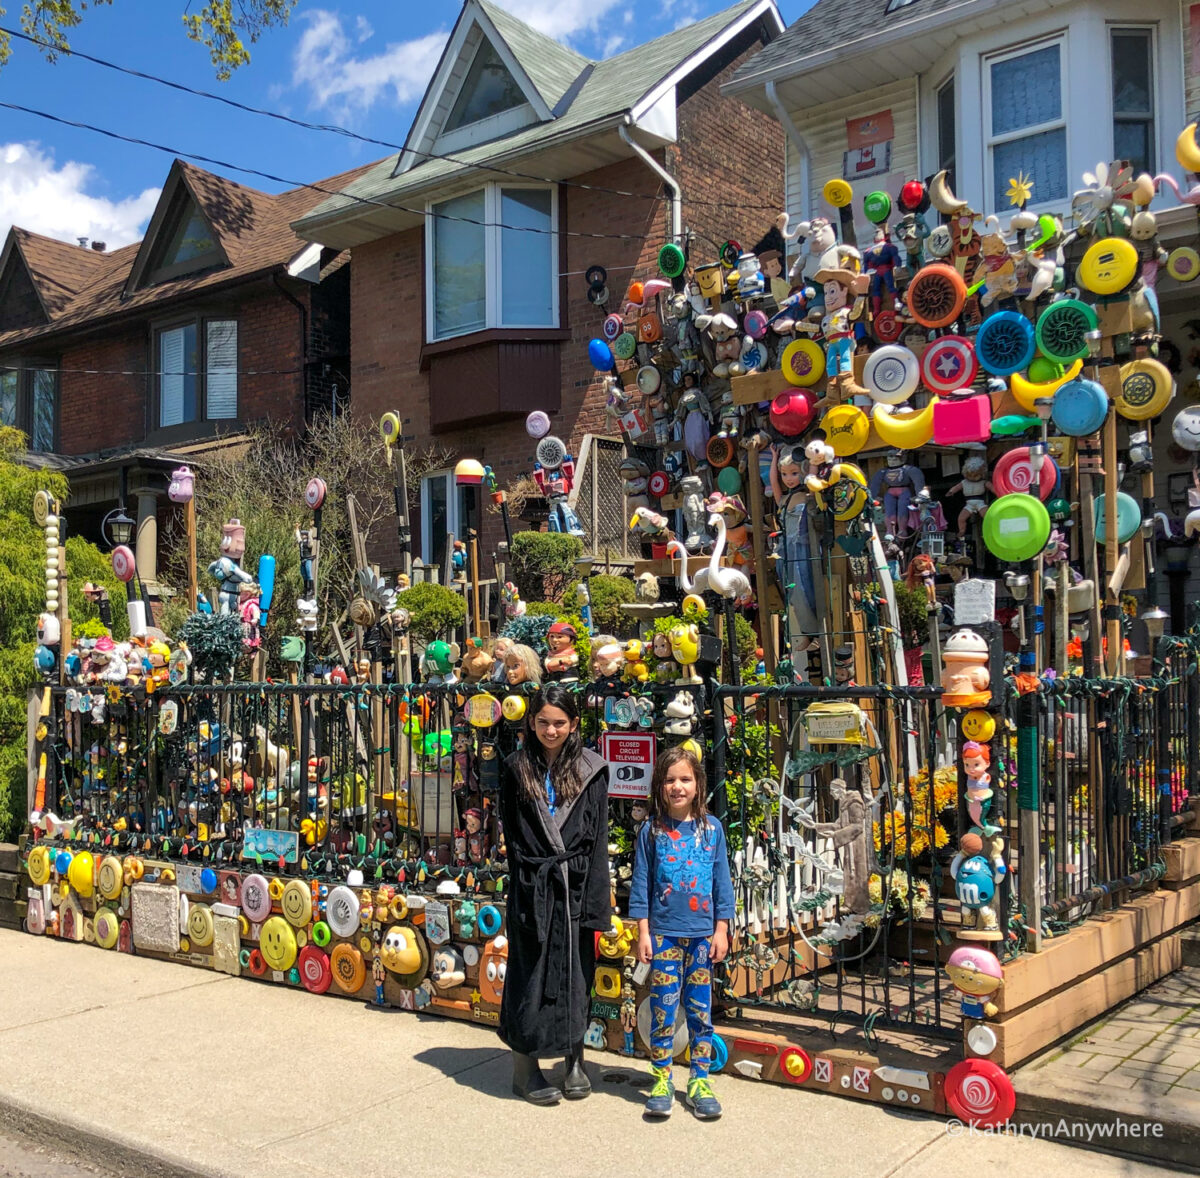 exterior of Toronto Creepy Doll House in Leslieville, 35 Bertmount Ave, Toronto, ON M4M 2X8